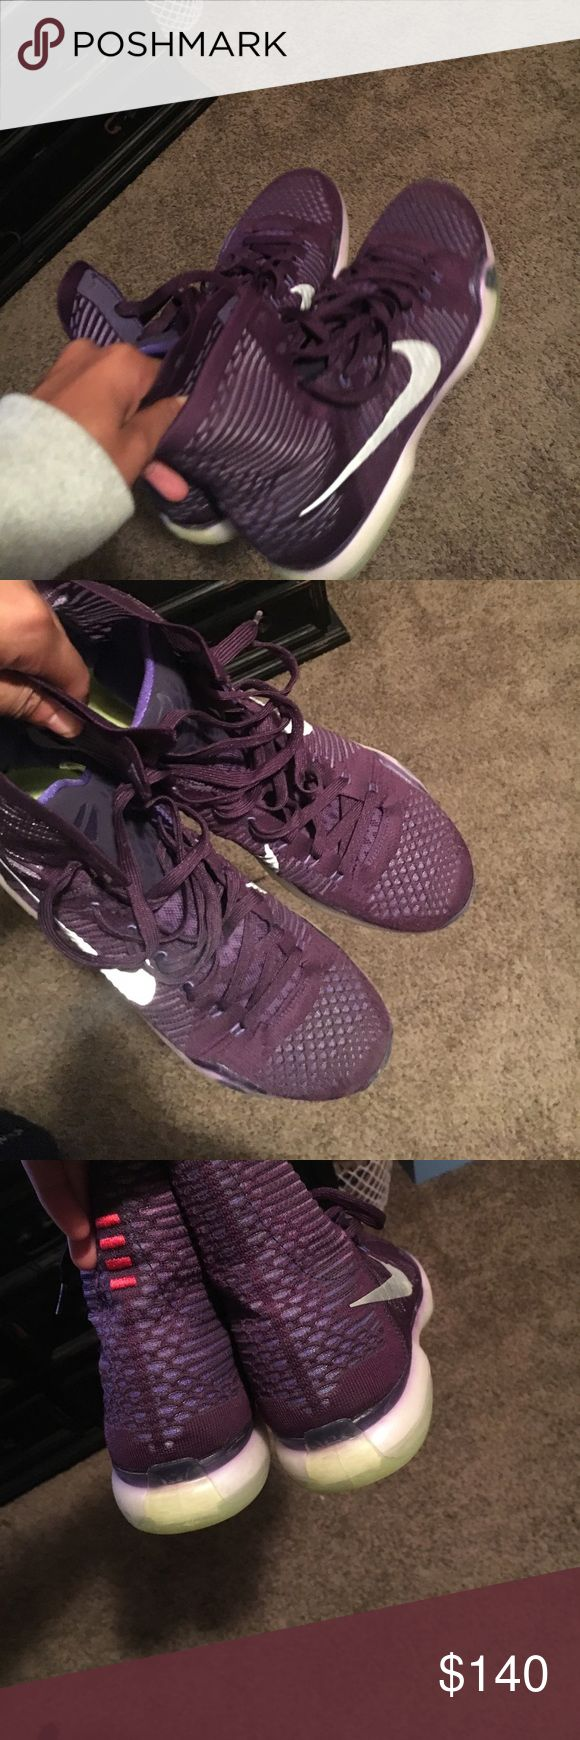 Kobe 10 purple Brand new message me for more pictures 321-248-3105 Nike Shoes Sneakers